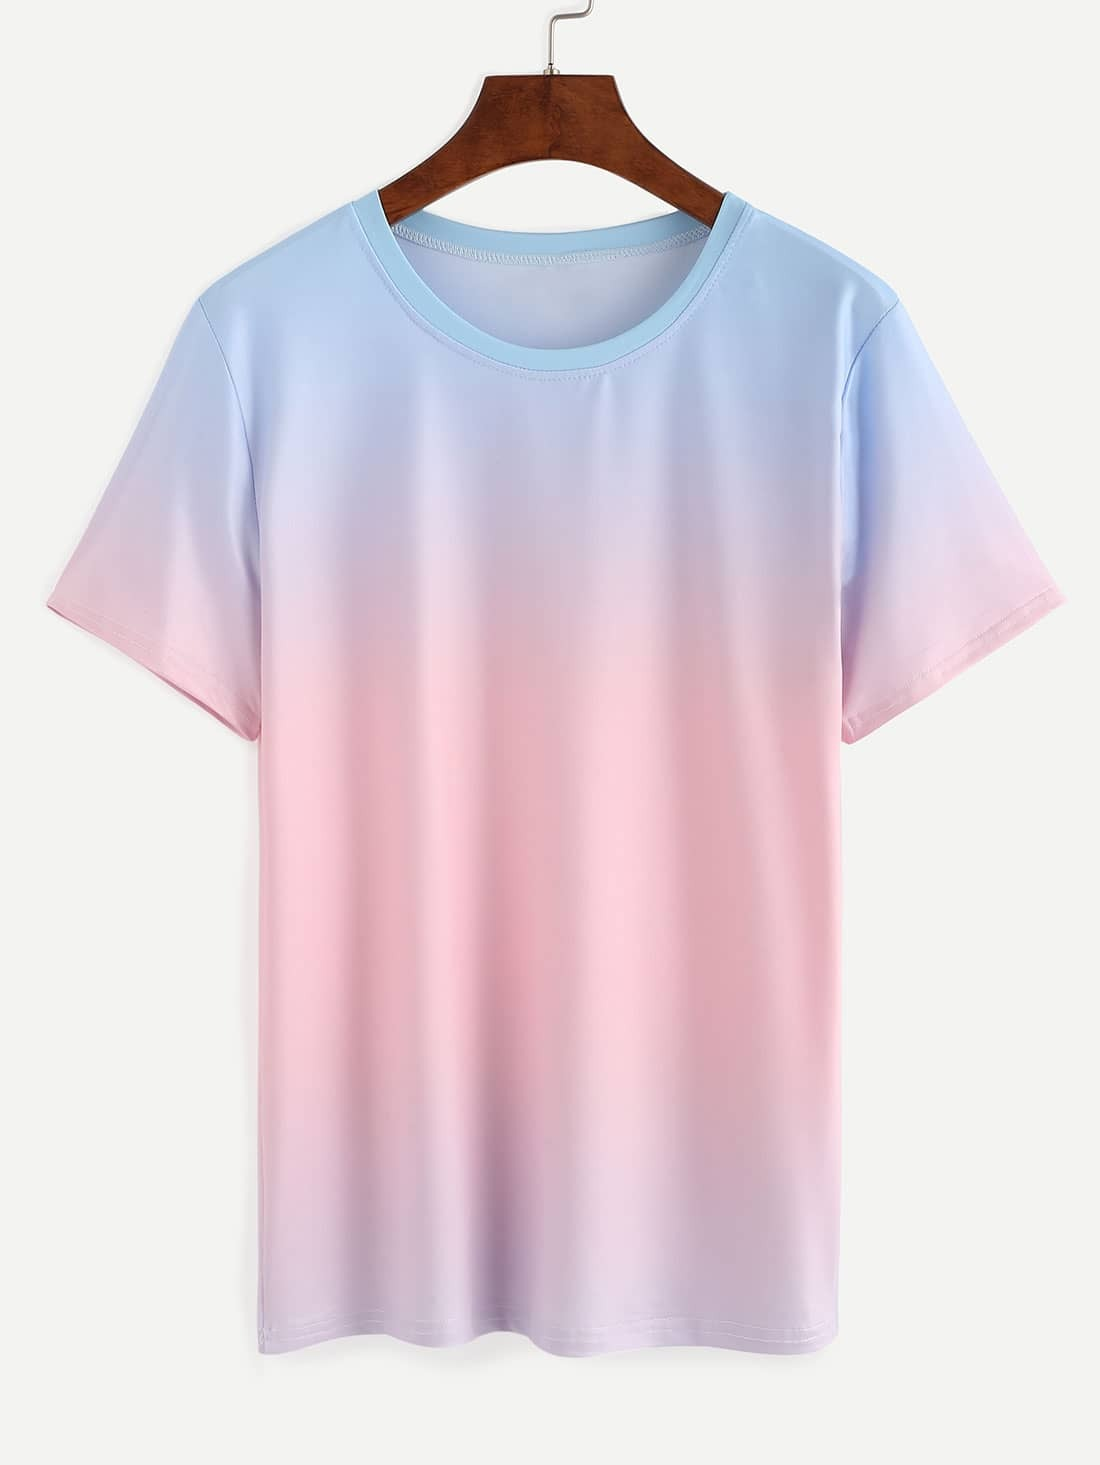 Blue Pink Ombre T-shirt EmmaCloth-Women Fast Fashion Online